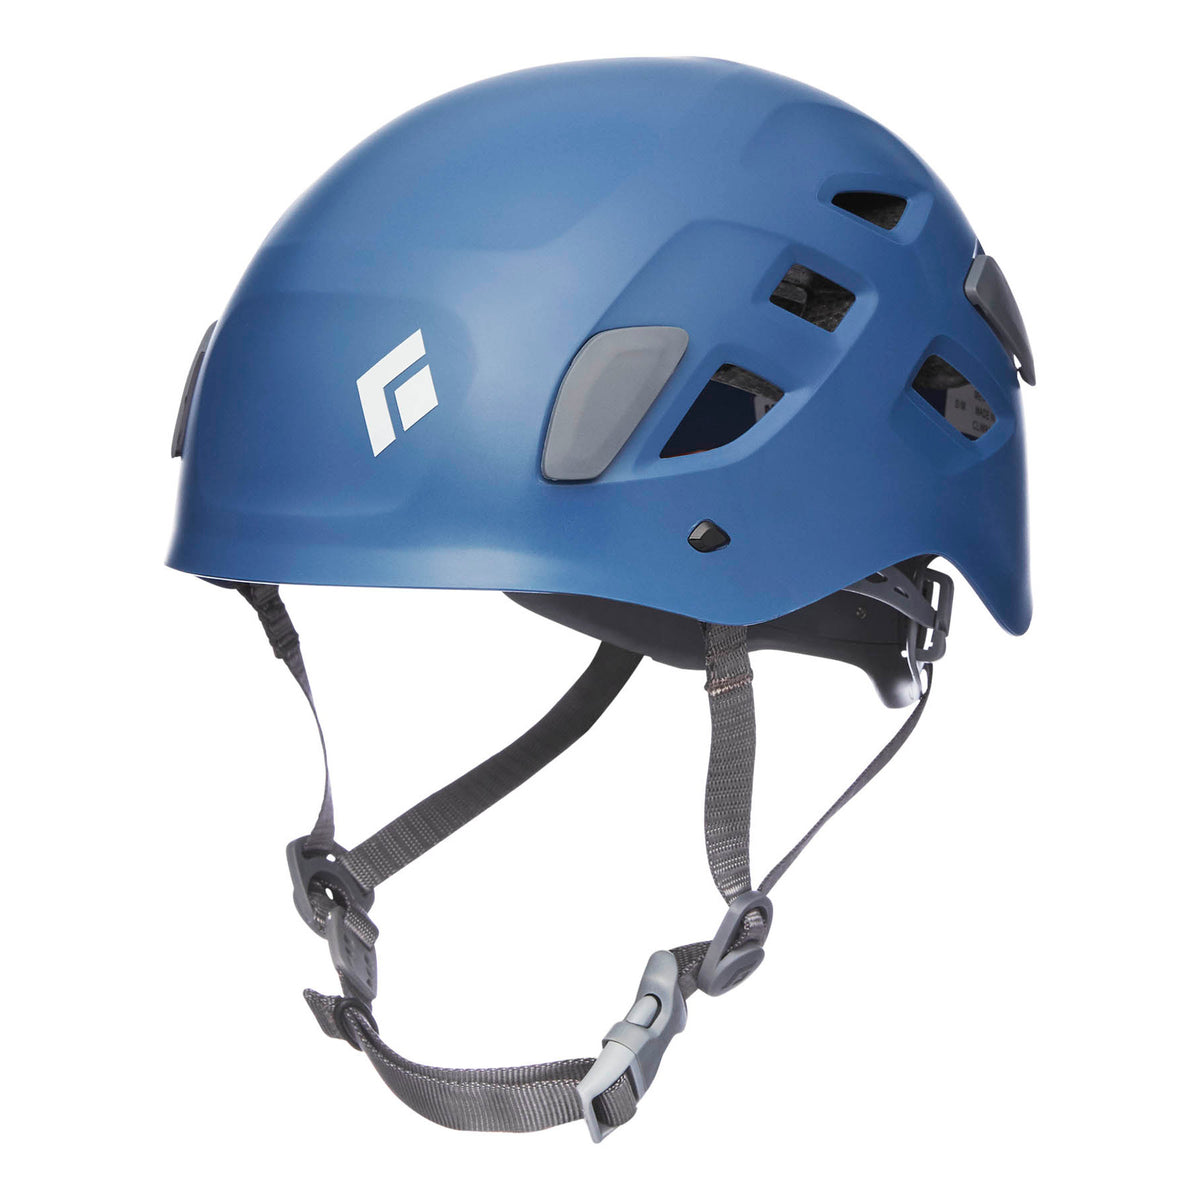 Black Diamond Half Dome climbing helmet, front/side view in blue colour with grey chin strap